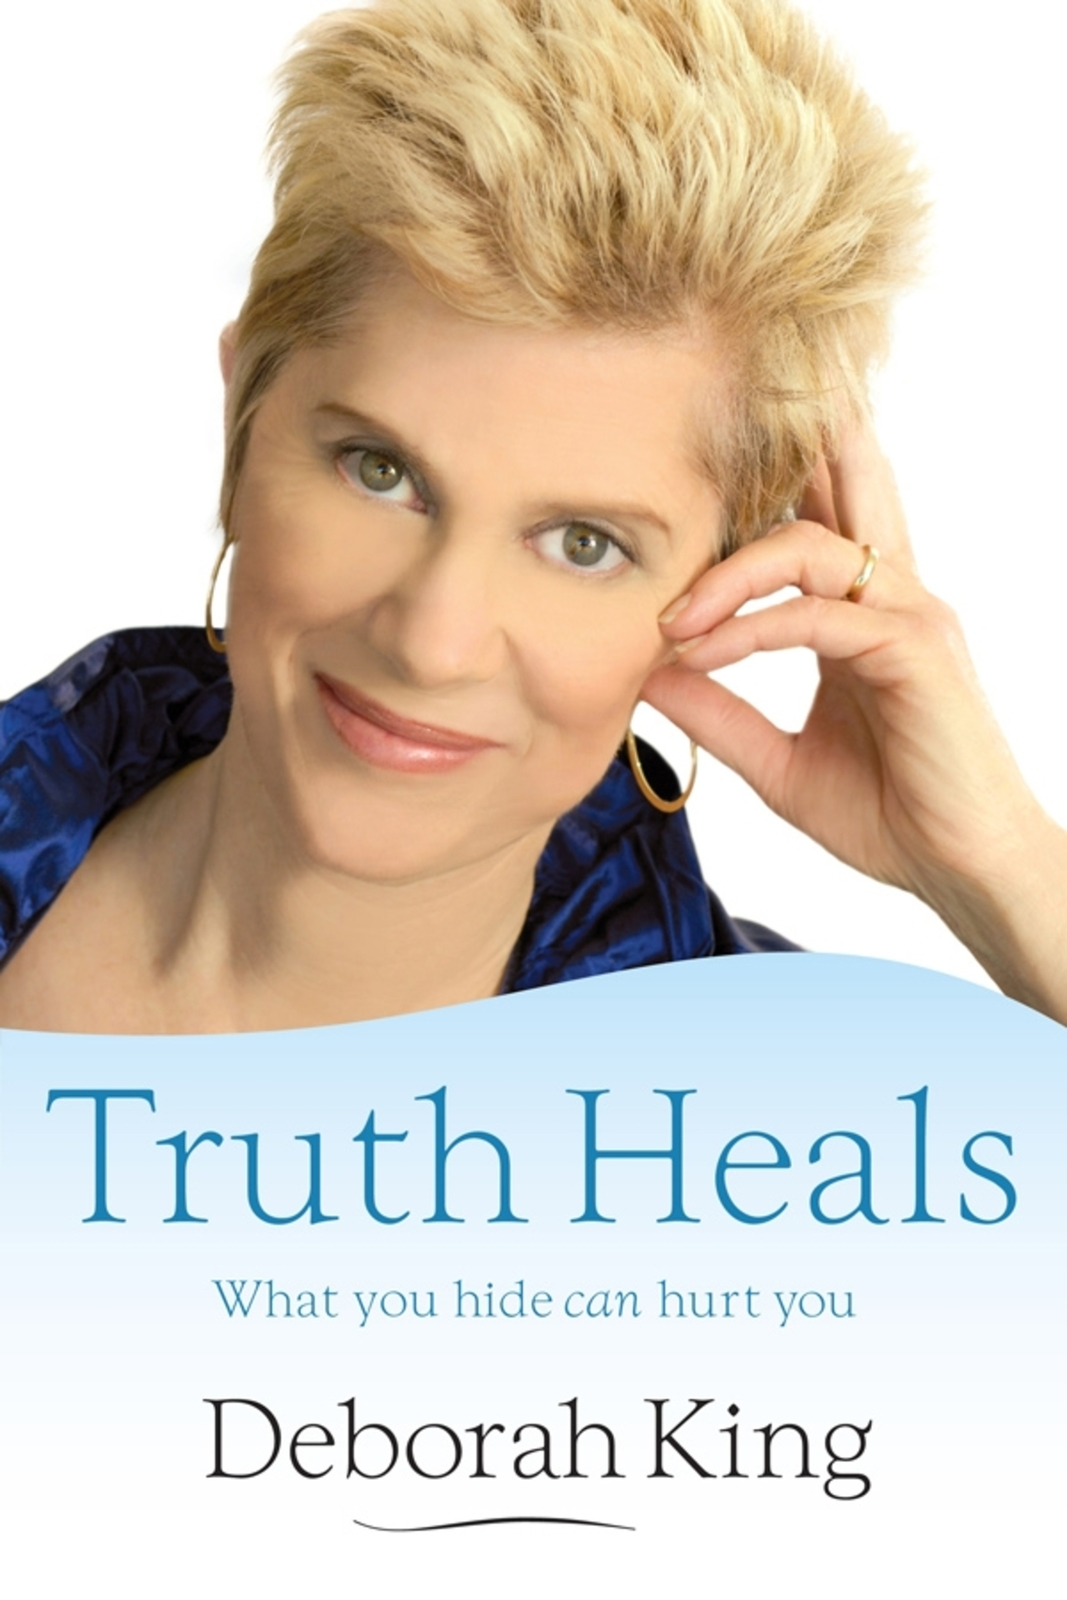 Truth Heals: What You Hide Can Hurt You by Deborah King image